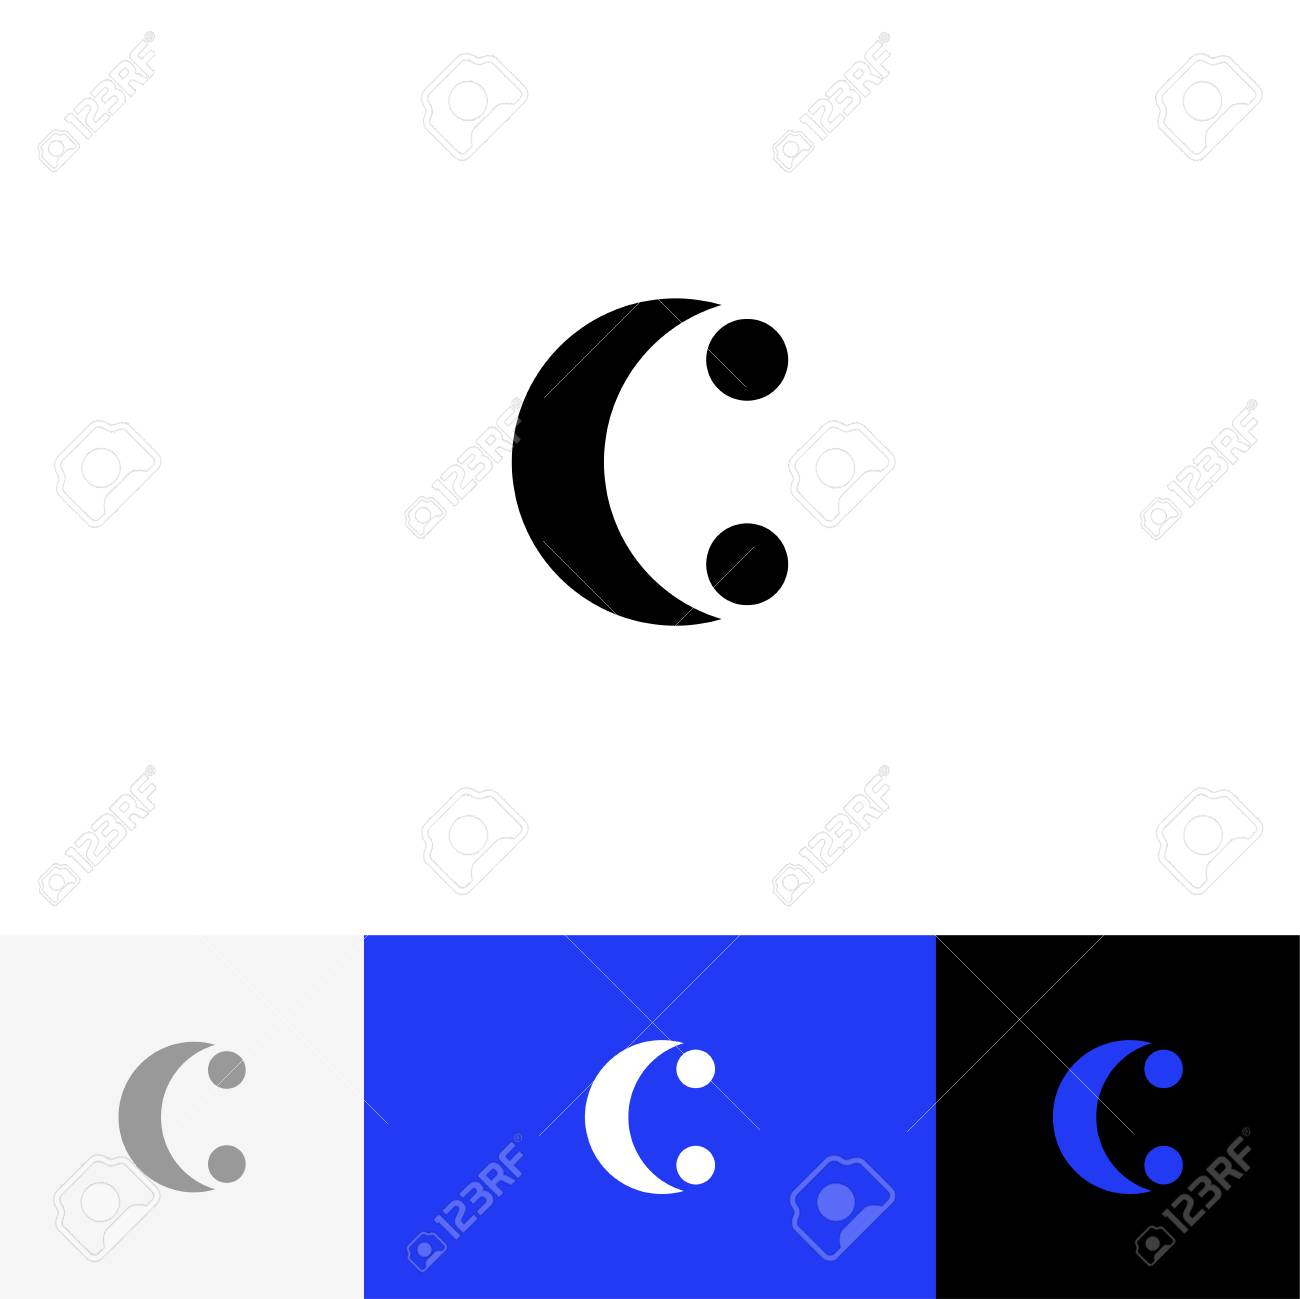 C With Two Dots Vector Minimalism Logo Icon Symbol Sign From